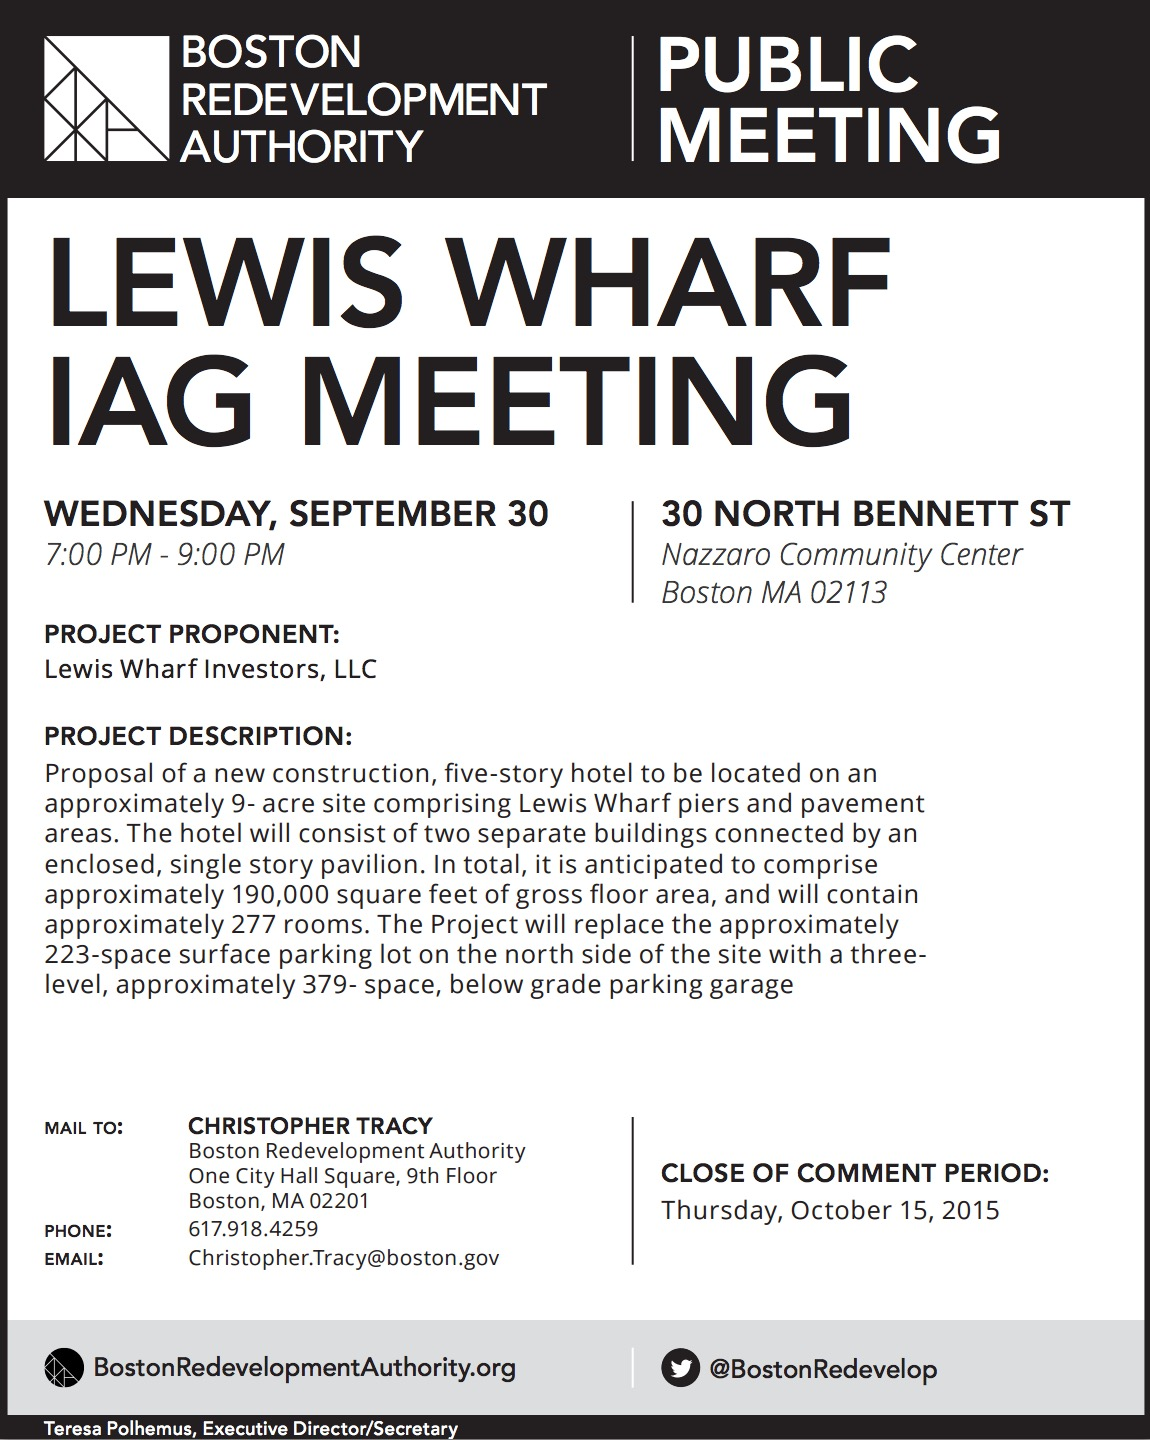 Lewis Wharf IAG Meeting on Wednesday, September 30th